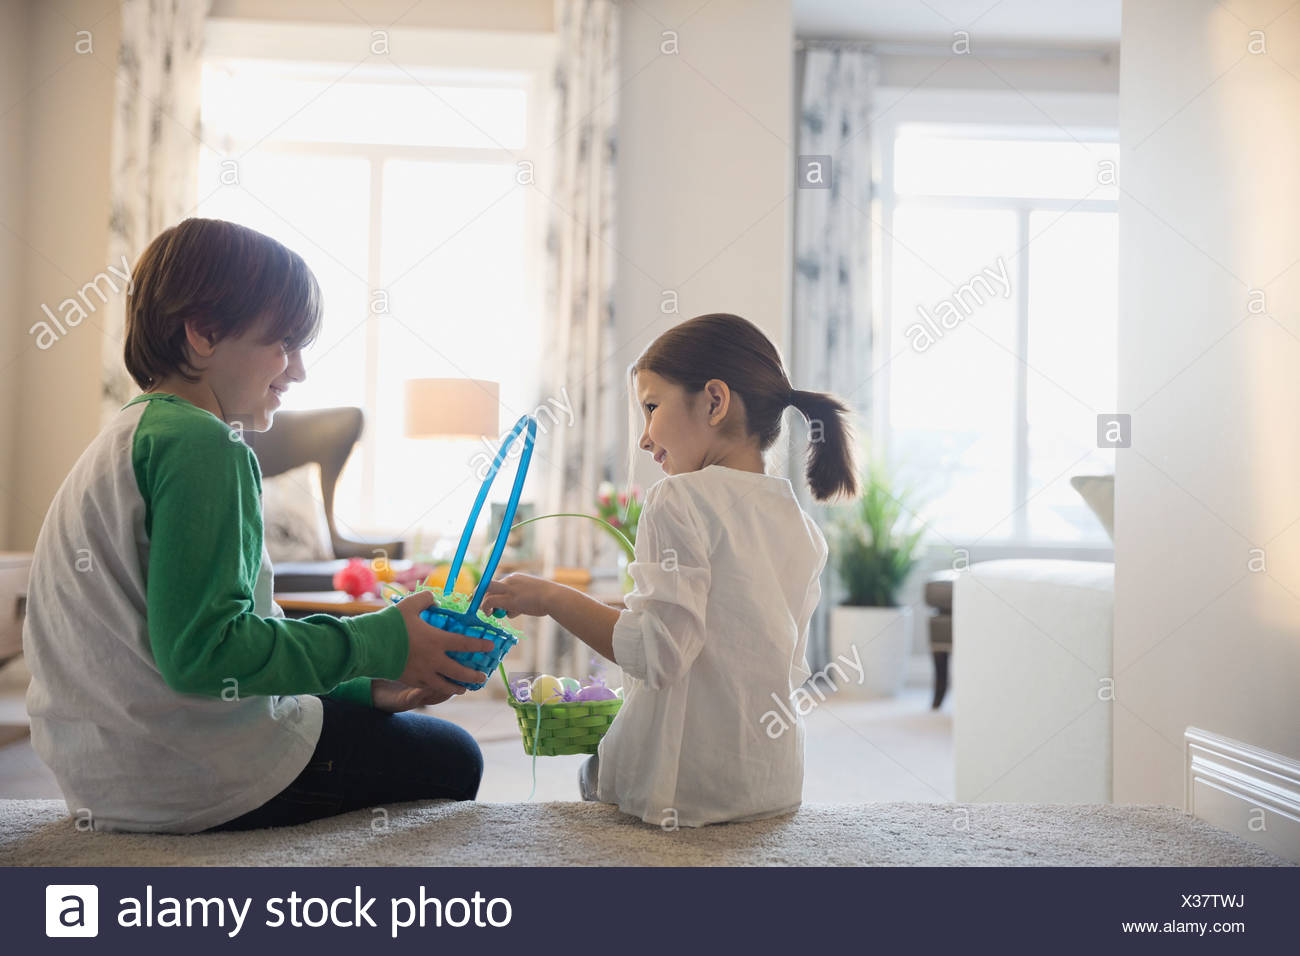 Siblings with Easter baskets at home - Stock Image